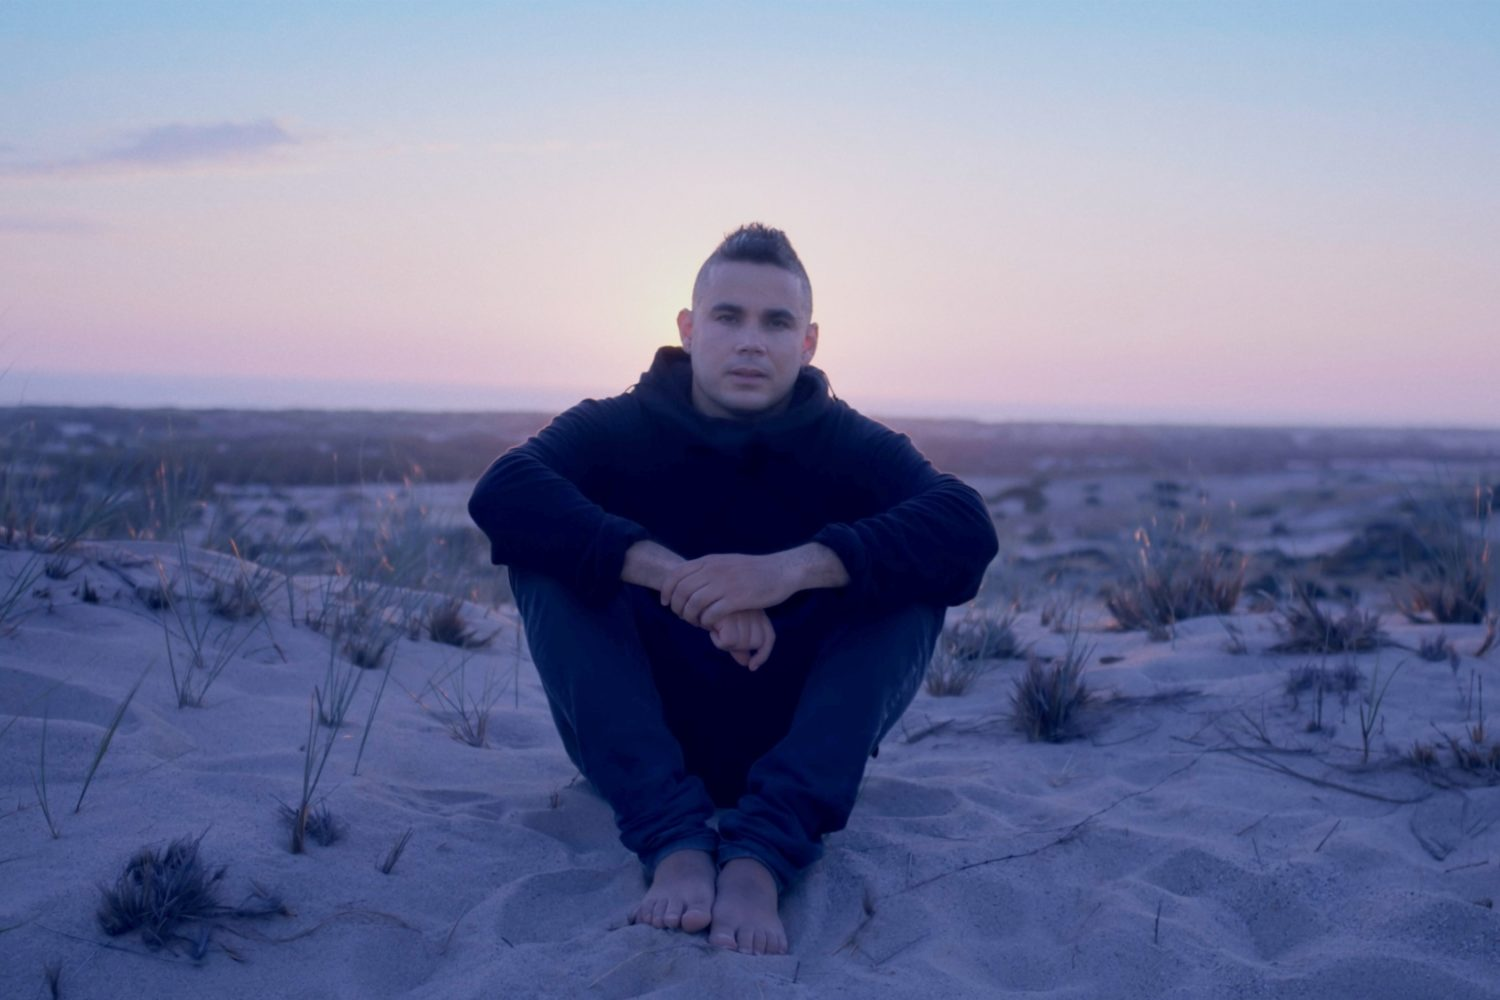 Rostam releases new single 'Unfold You'